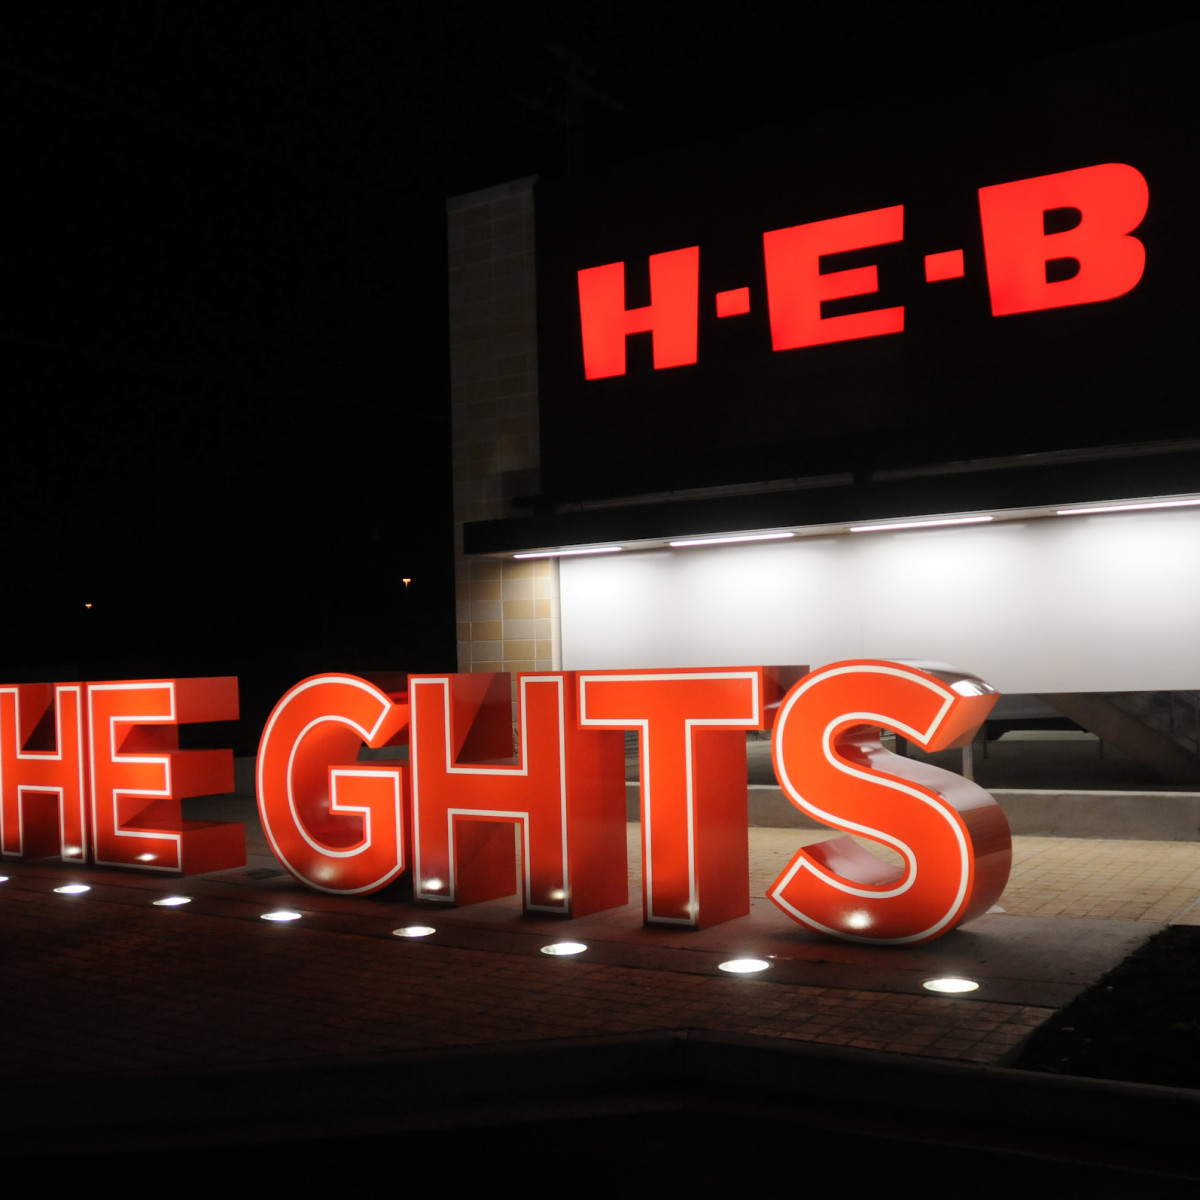 H-E-B Heights sign